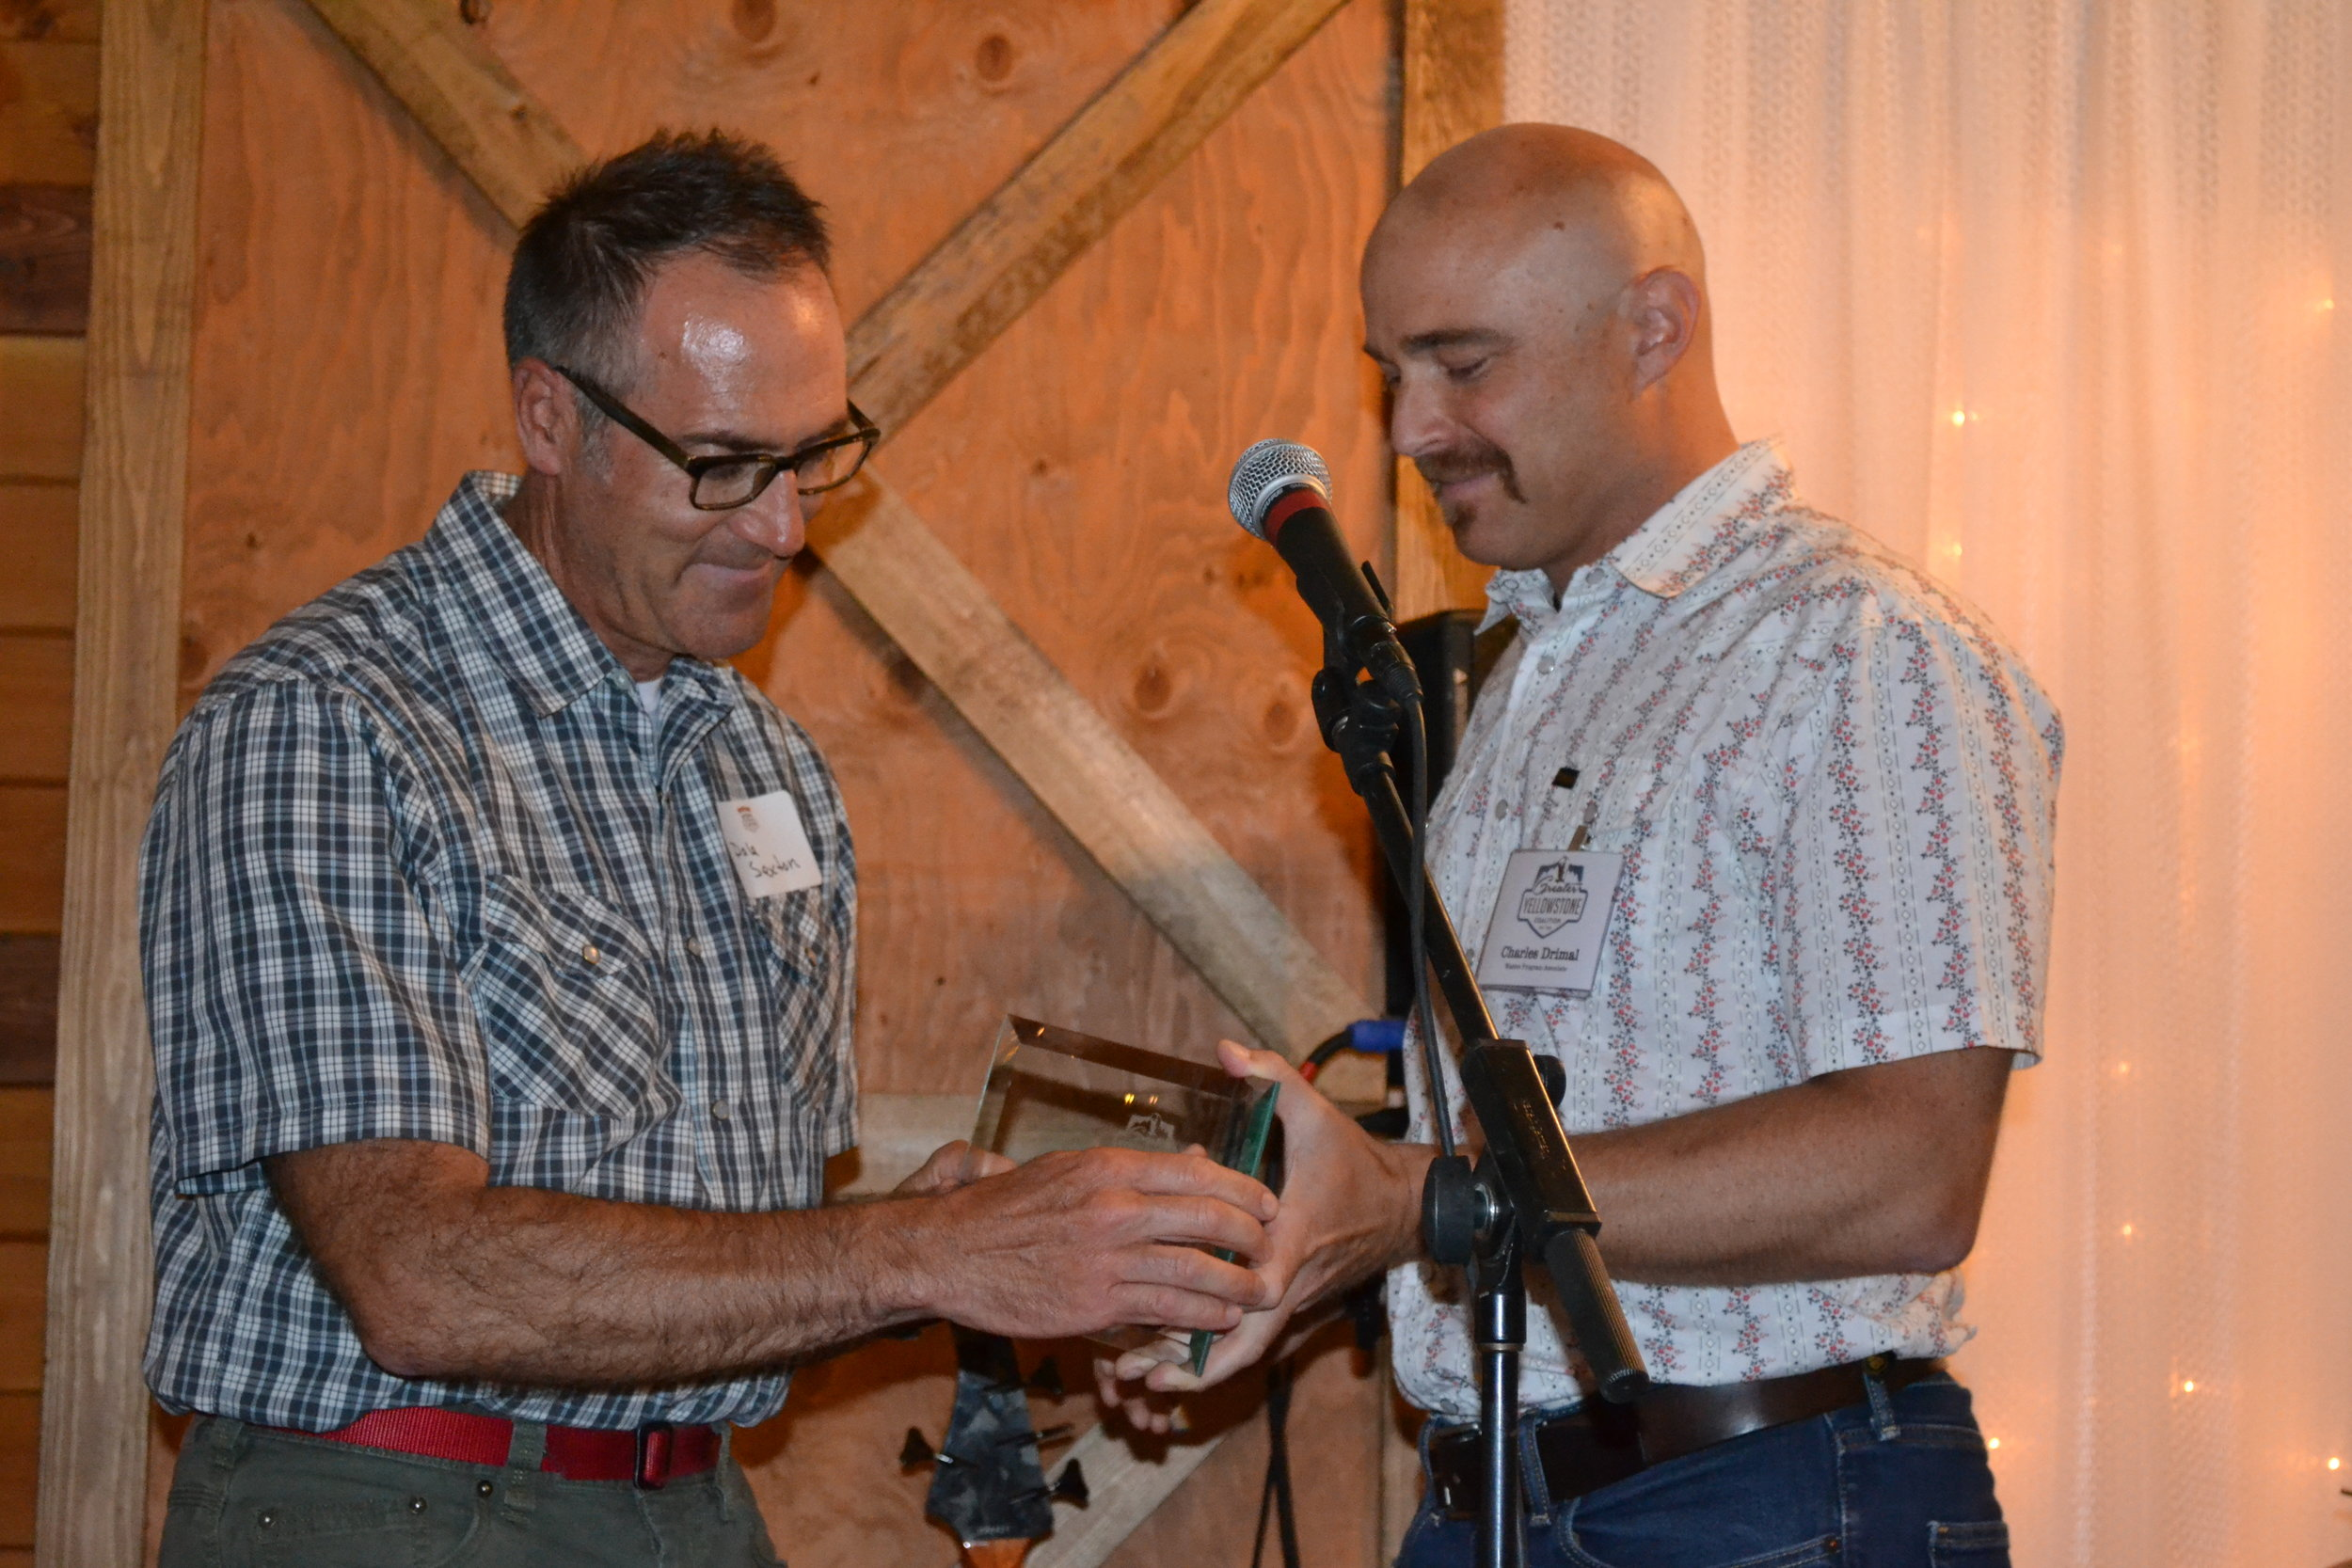 Charles Wolf Drimal of GYC (right) gives Dale Sexton the Grassroots Activism Award. (Photo courtesy GYC.)